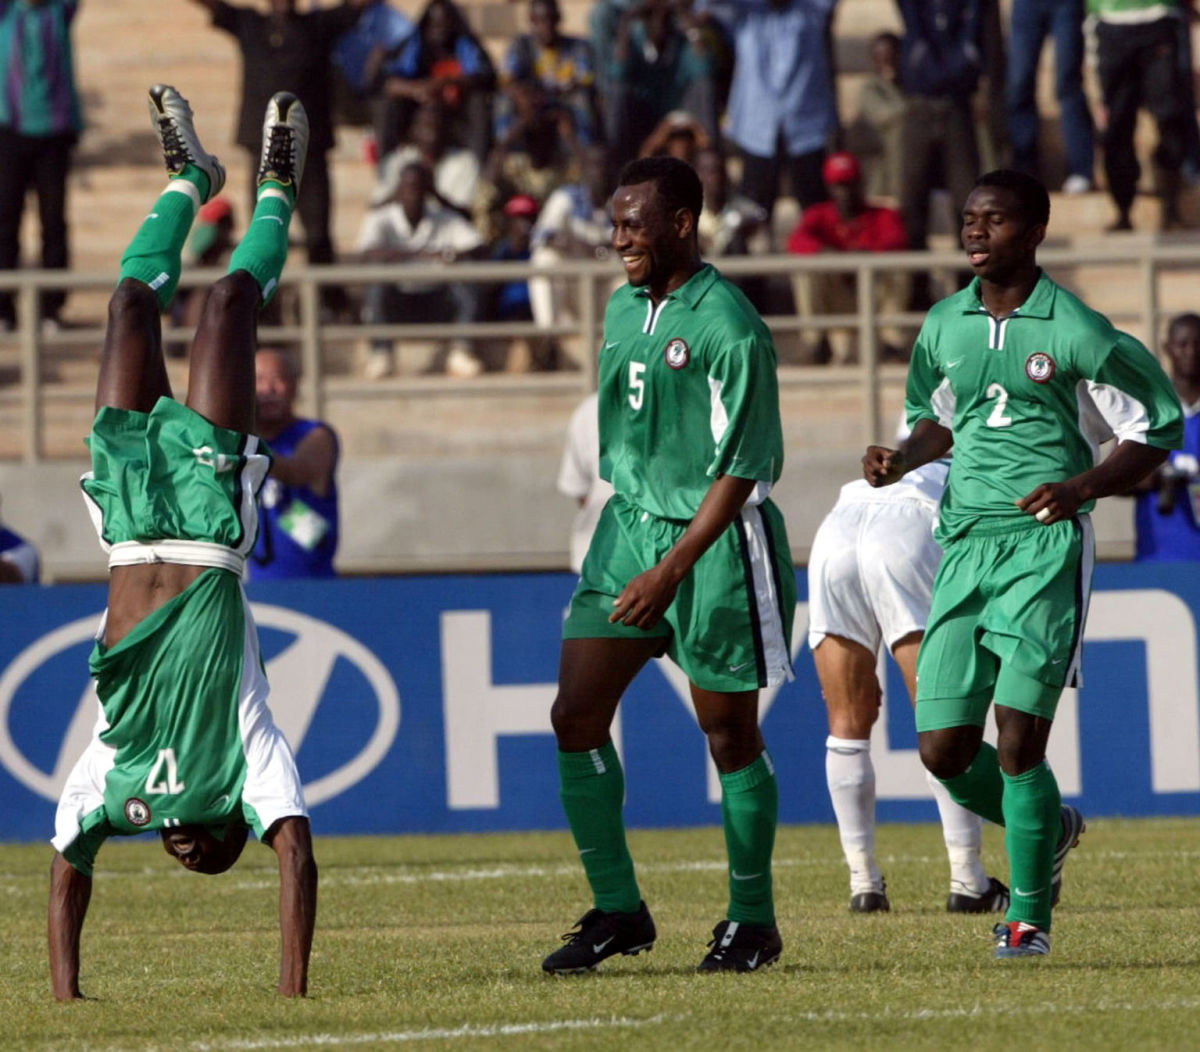 nigerian-julius-aghahowa-l-jubilates-in-front-of-5af9a80ff7b09d6a87000002.jpg